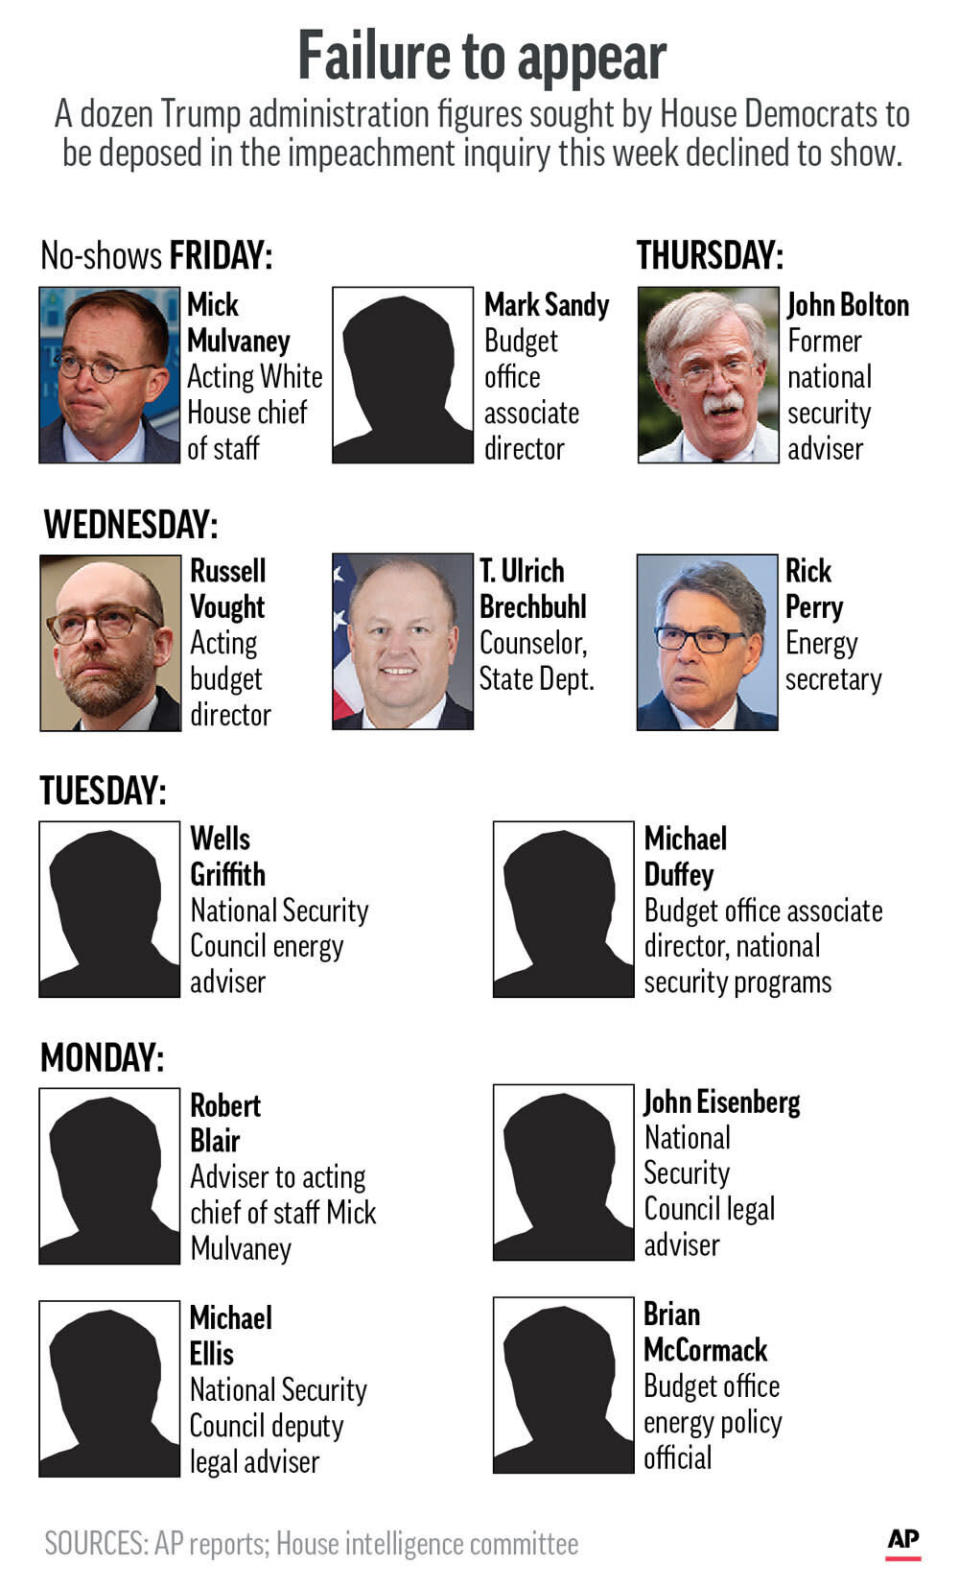 Witnesses who did not show up this week at congressional impeachment hearings;